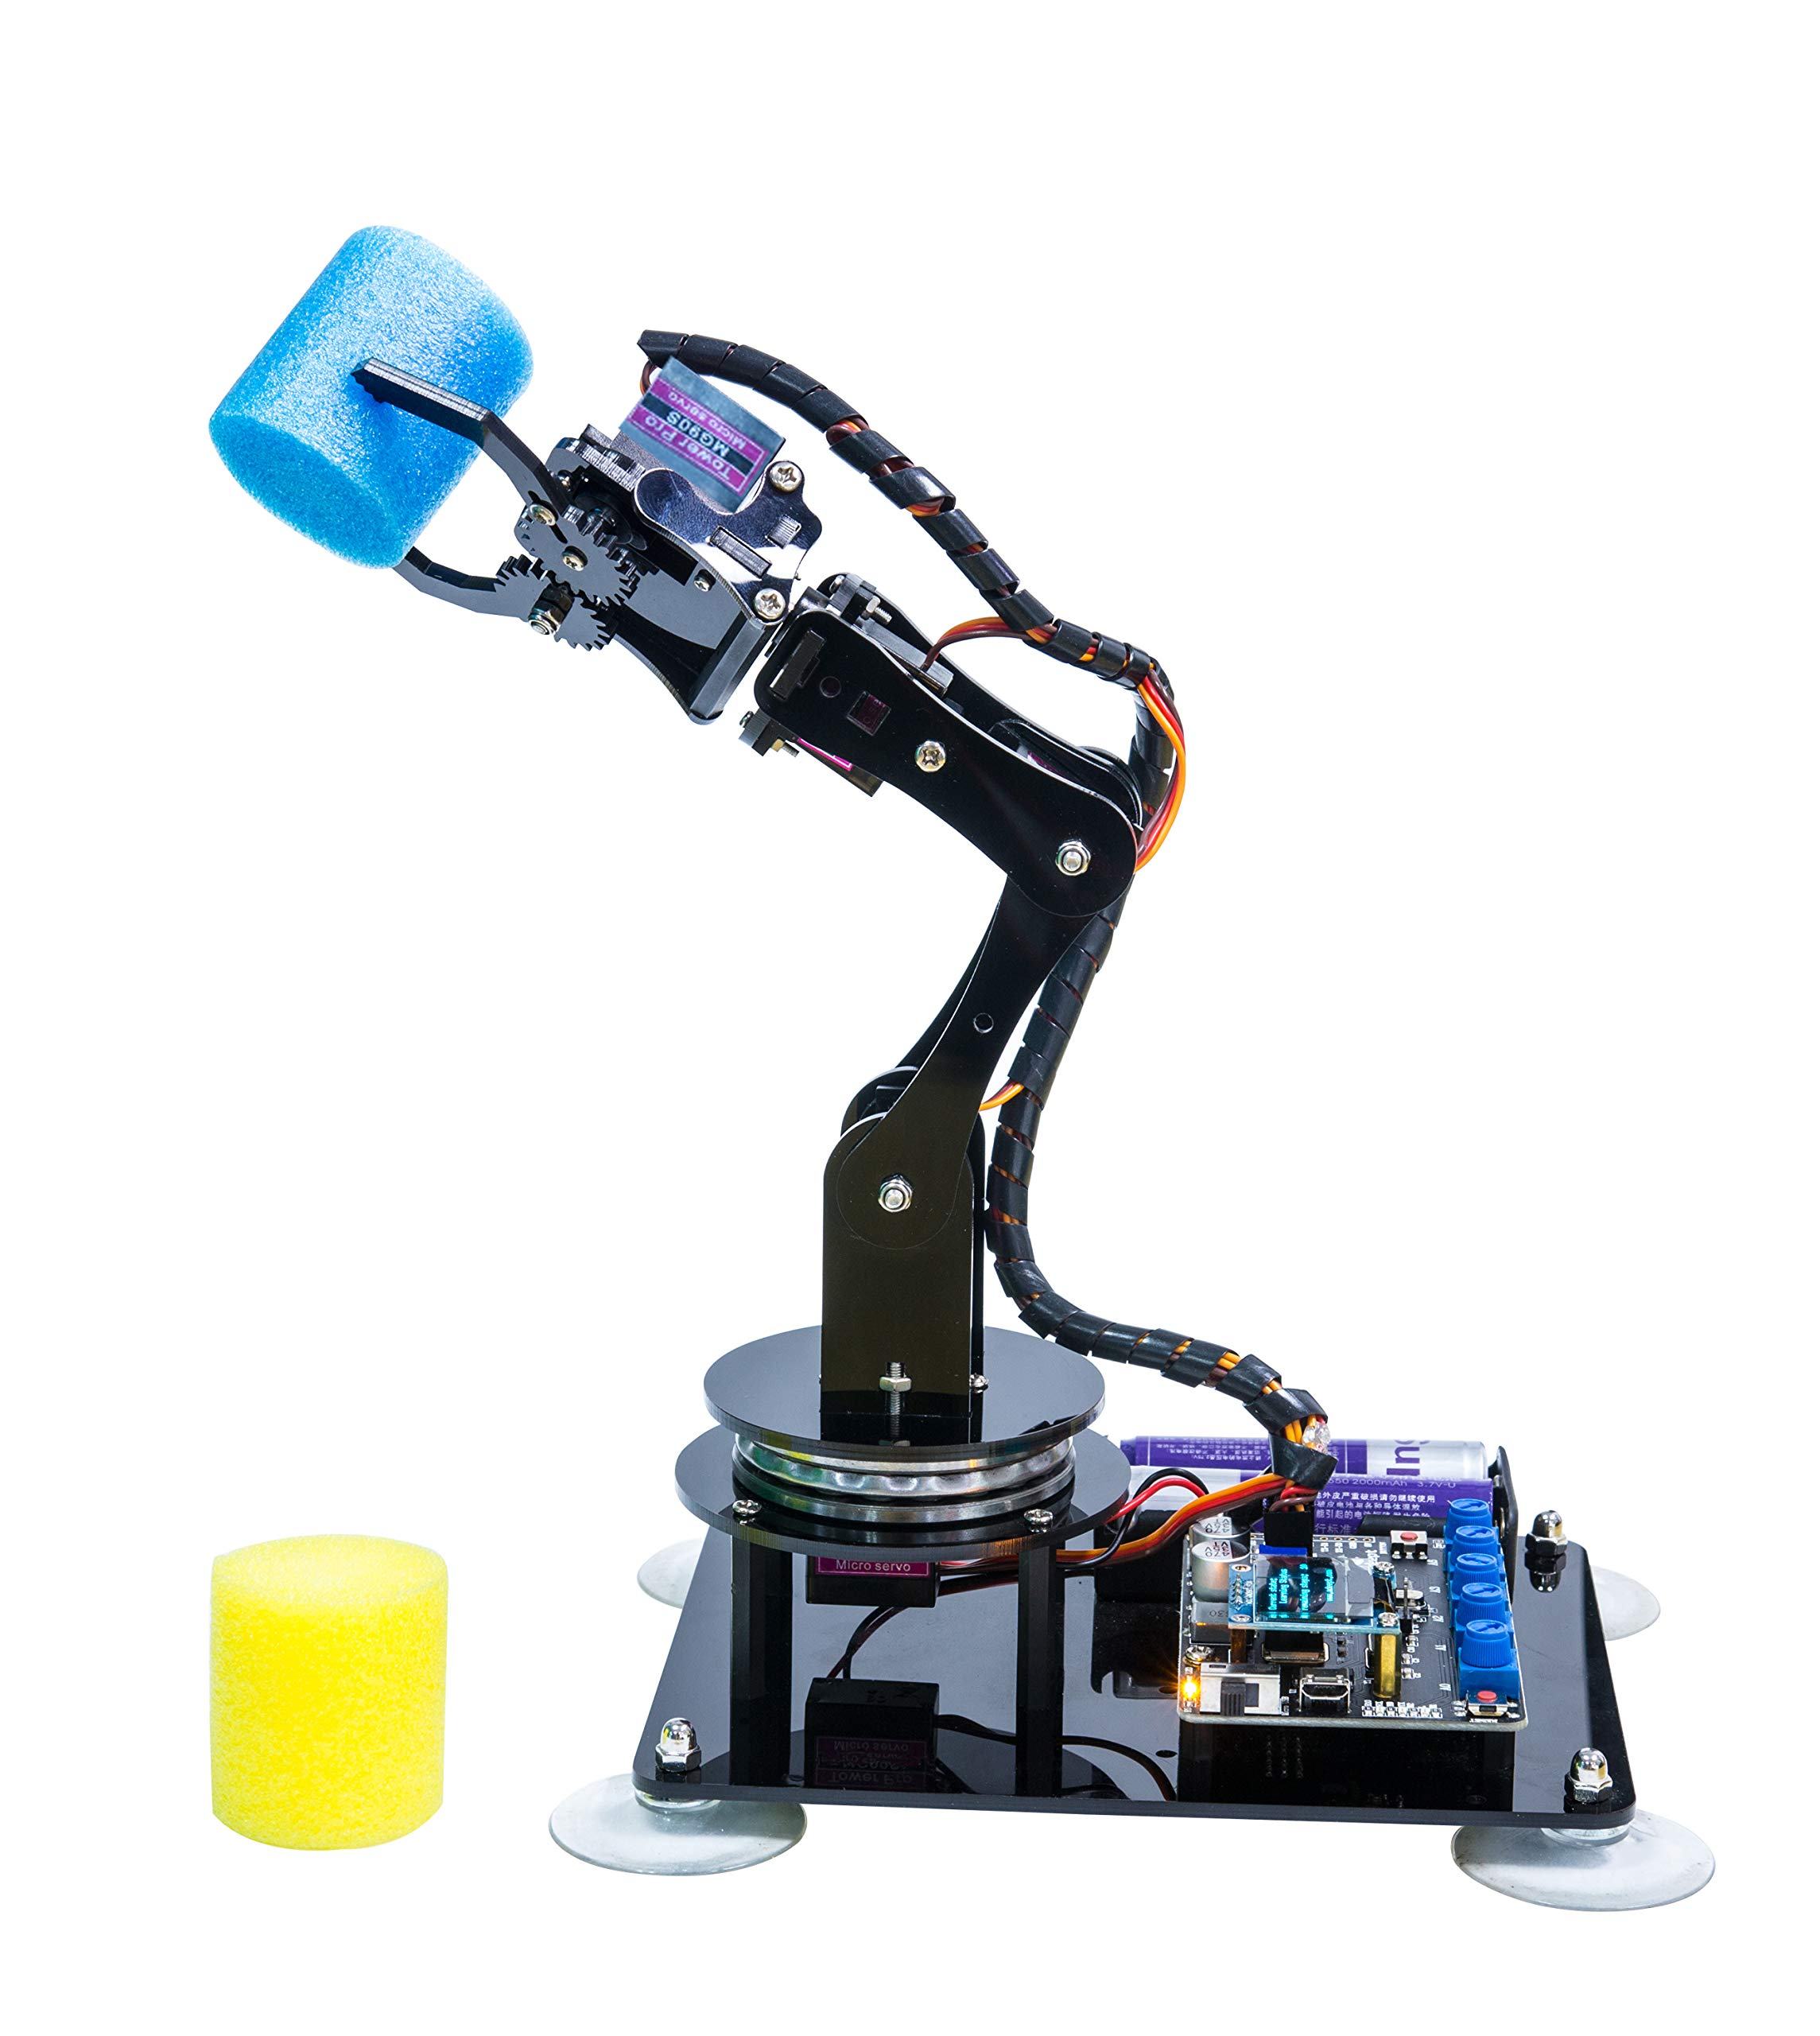 Adeept 5-DOF Robot Arm 5Axis Robotic Arm Kit Compatible with Arduino IDE   Programmable Robot DIY Coding Robot Kit   STEAM Robot Arm Kit with OLED Display   Processing Code and PDF